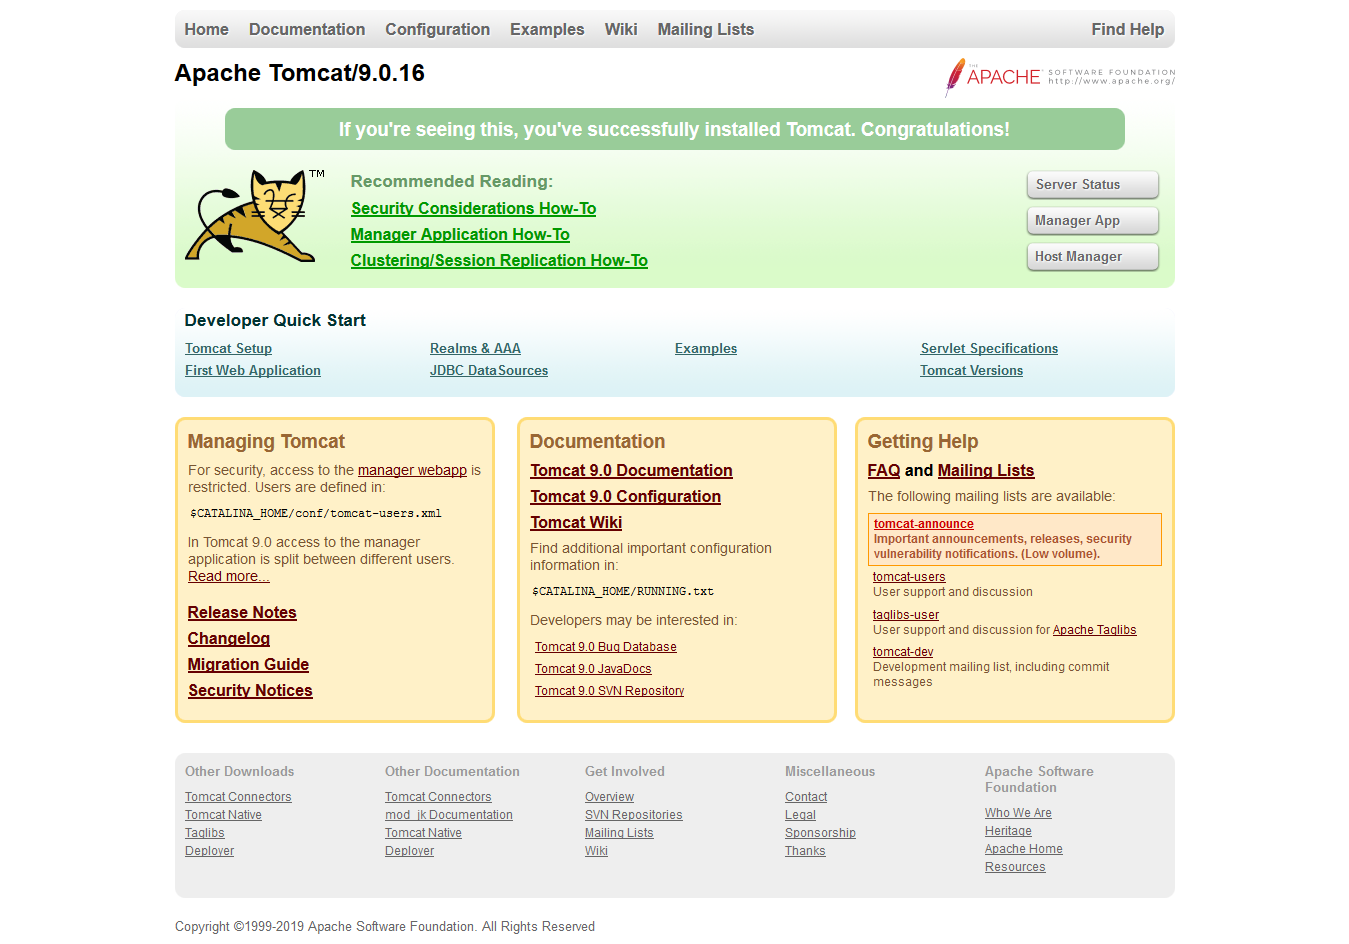 Install Apache Tomcat 9 with Application Manager on CentOS 7